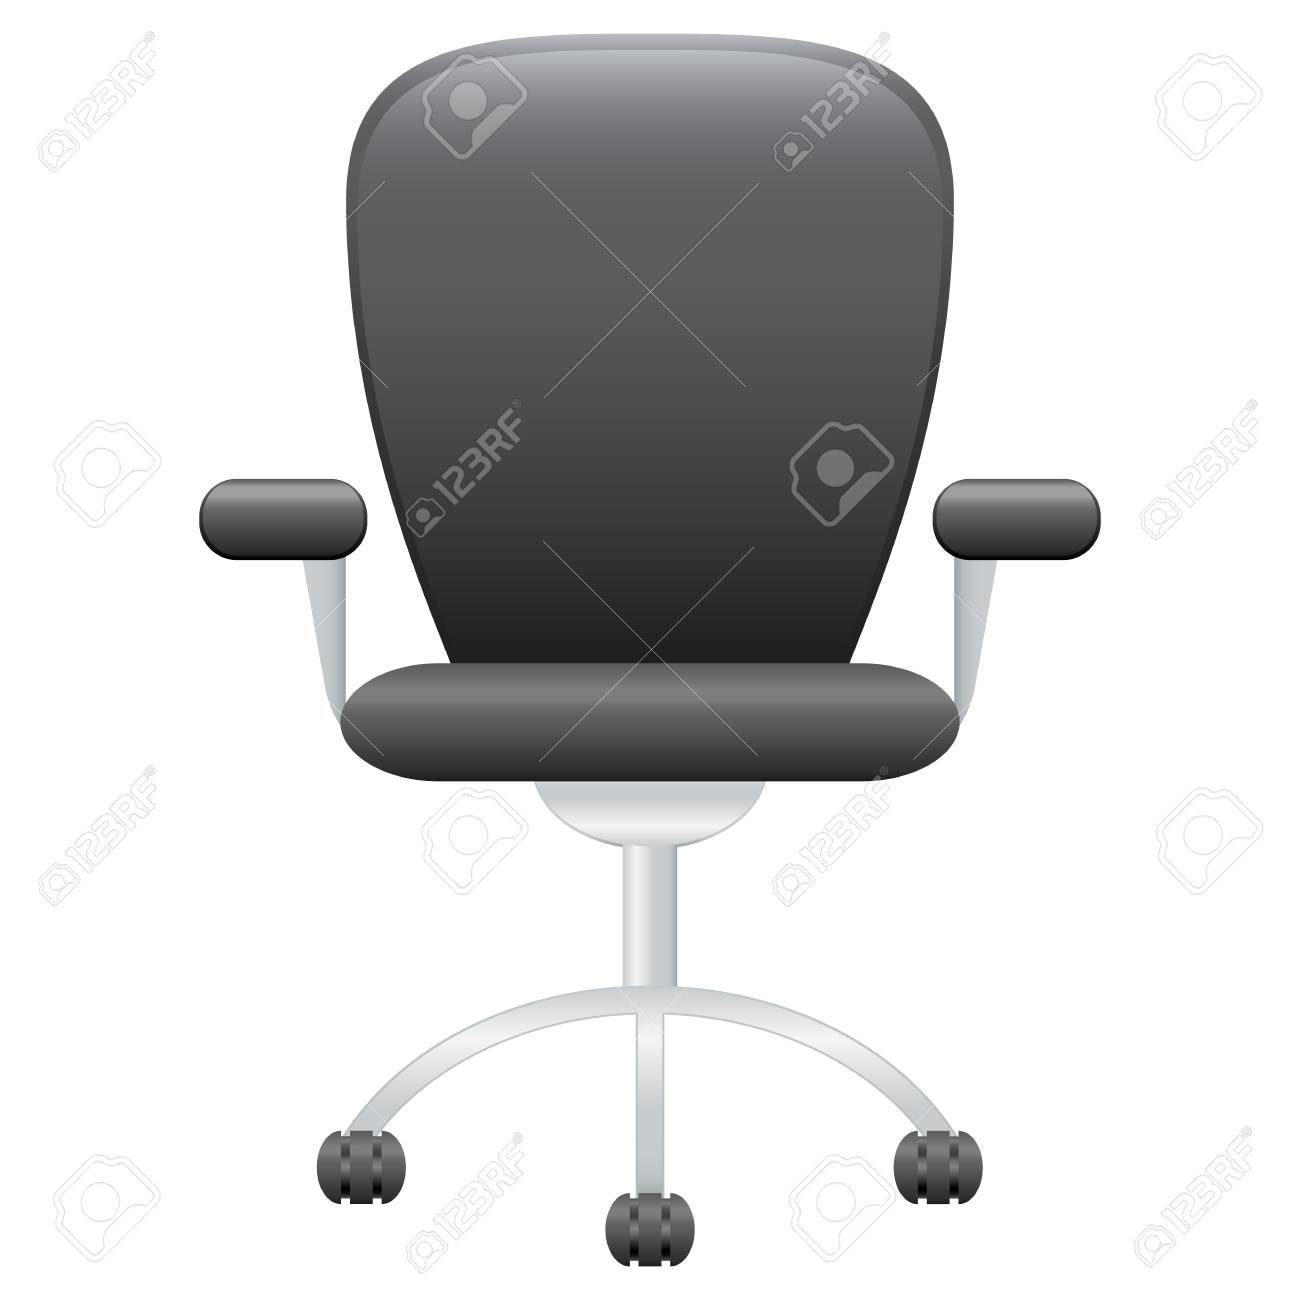 leather office chair Stock Vector - 18004248